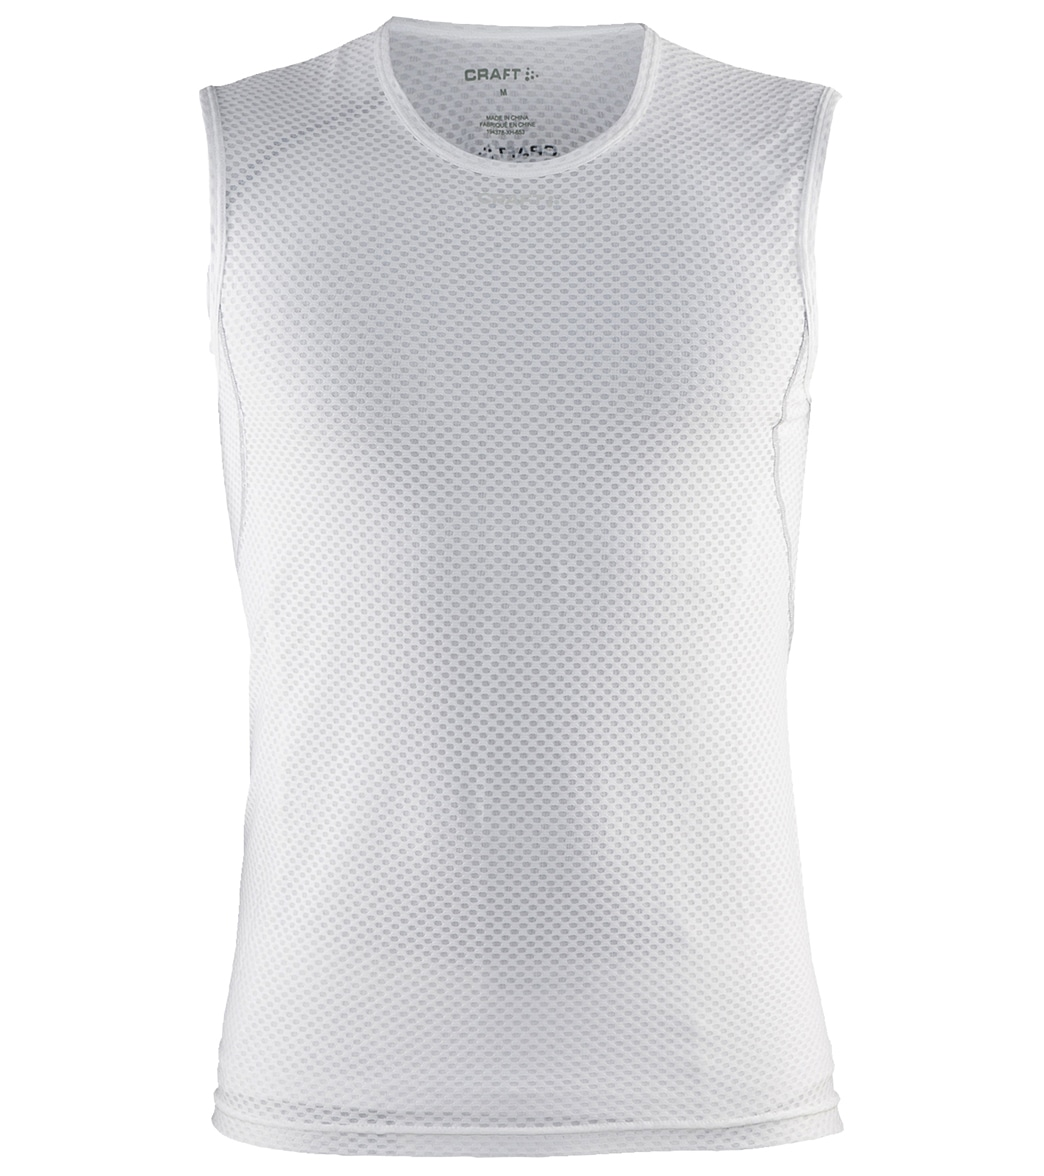 94d5bede7cb14 Craft Men s Cool Mesh Superlight SL Base Layer at SwimOutlet.com - Free  Shipping